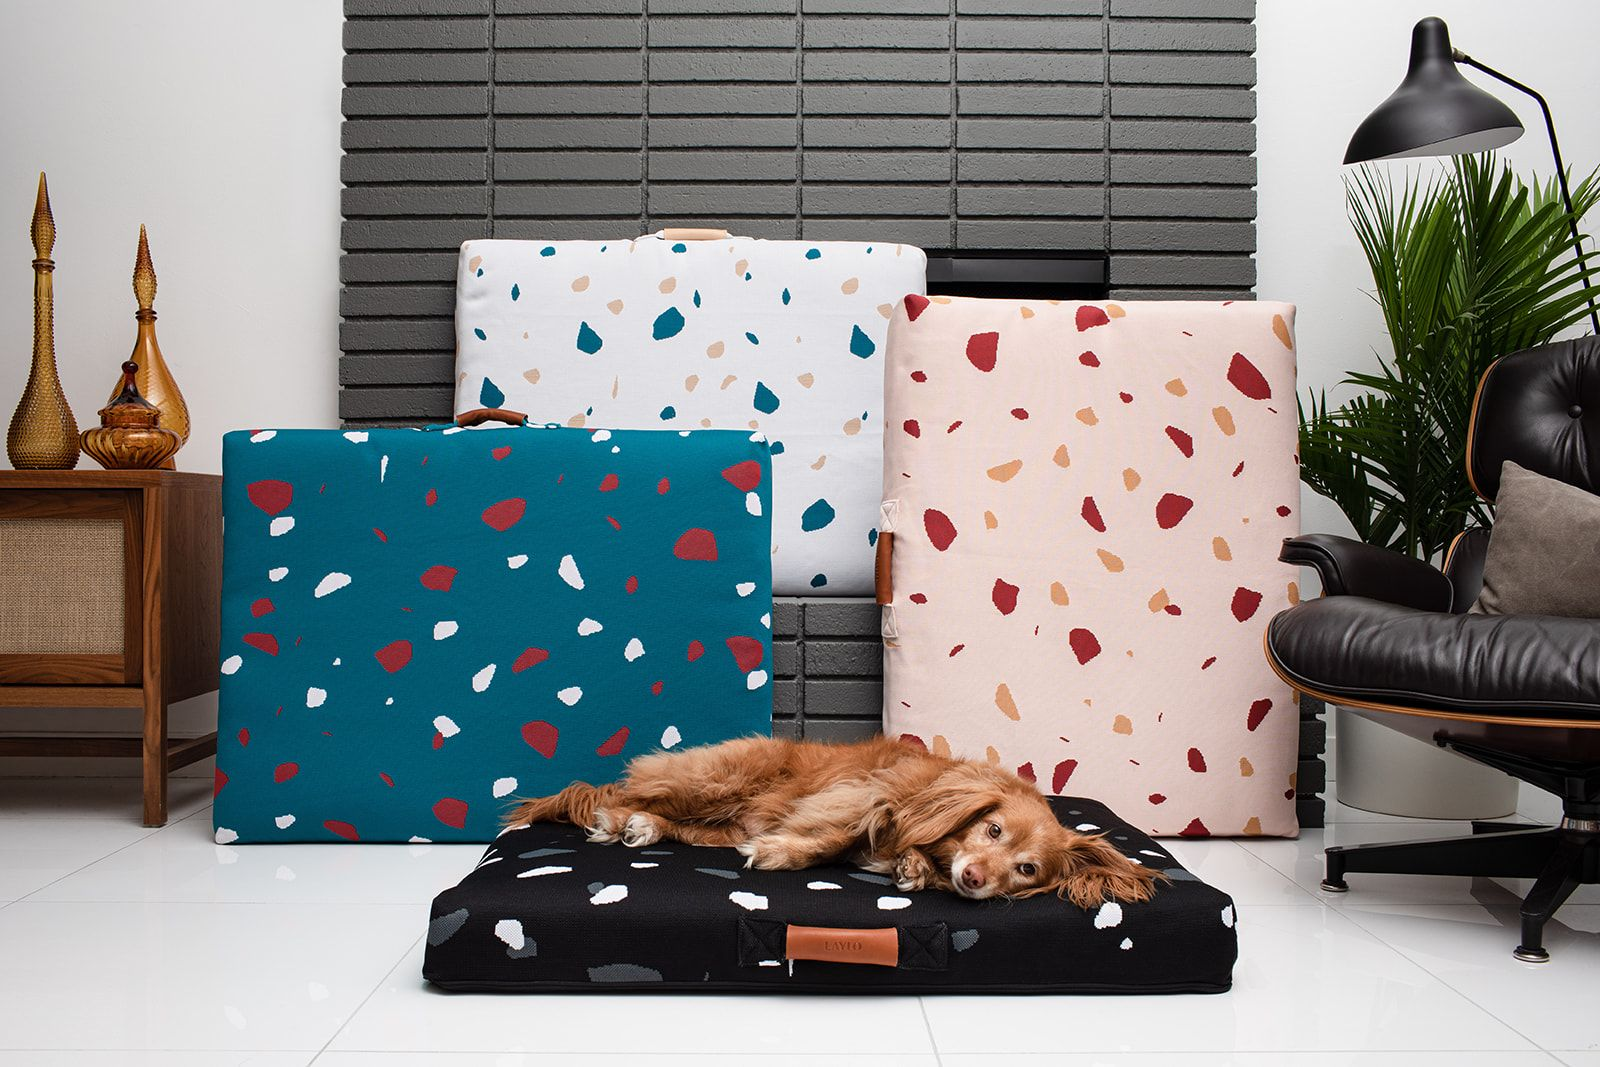 What Makes a Great Dog Bed – According to LAY LO